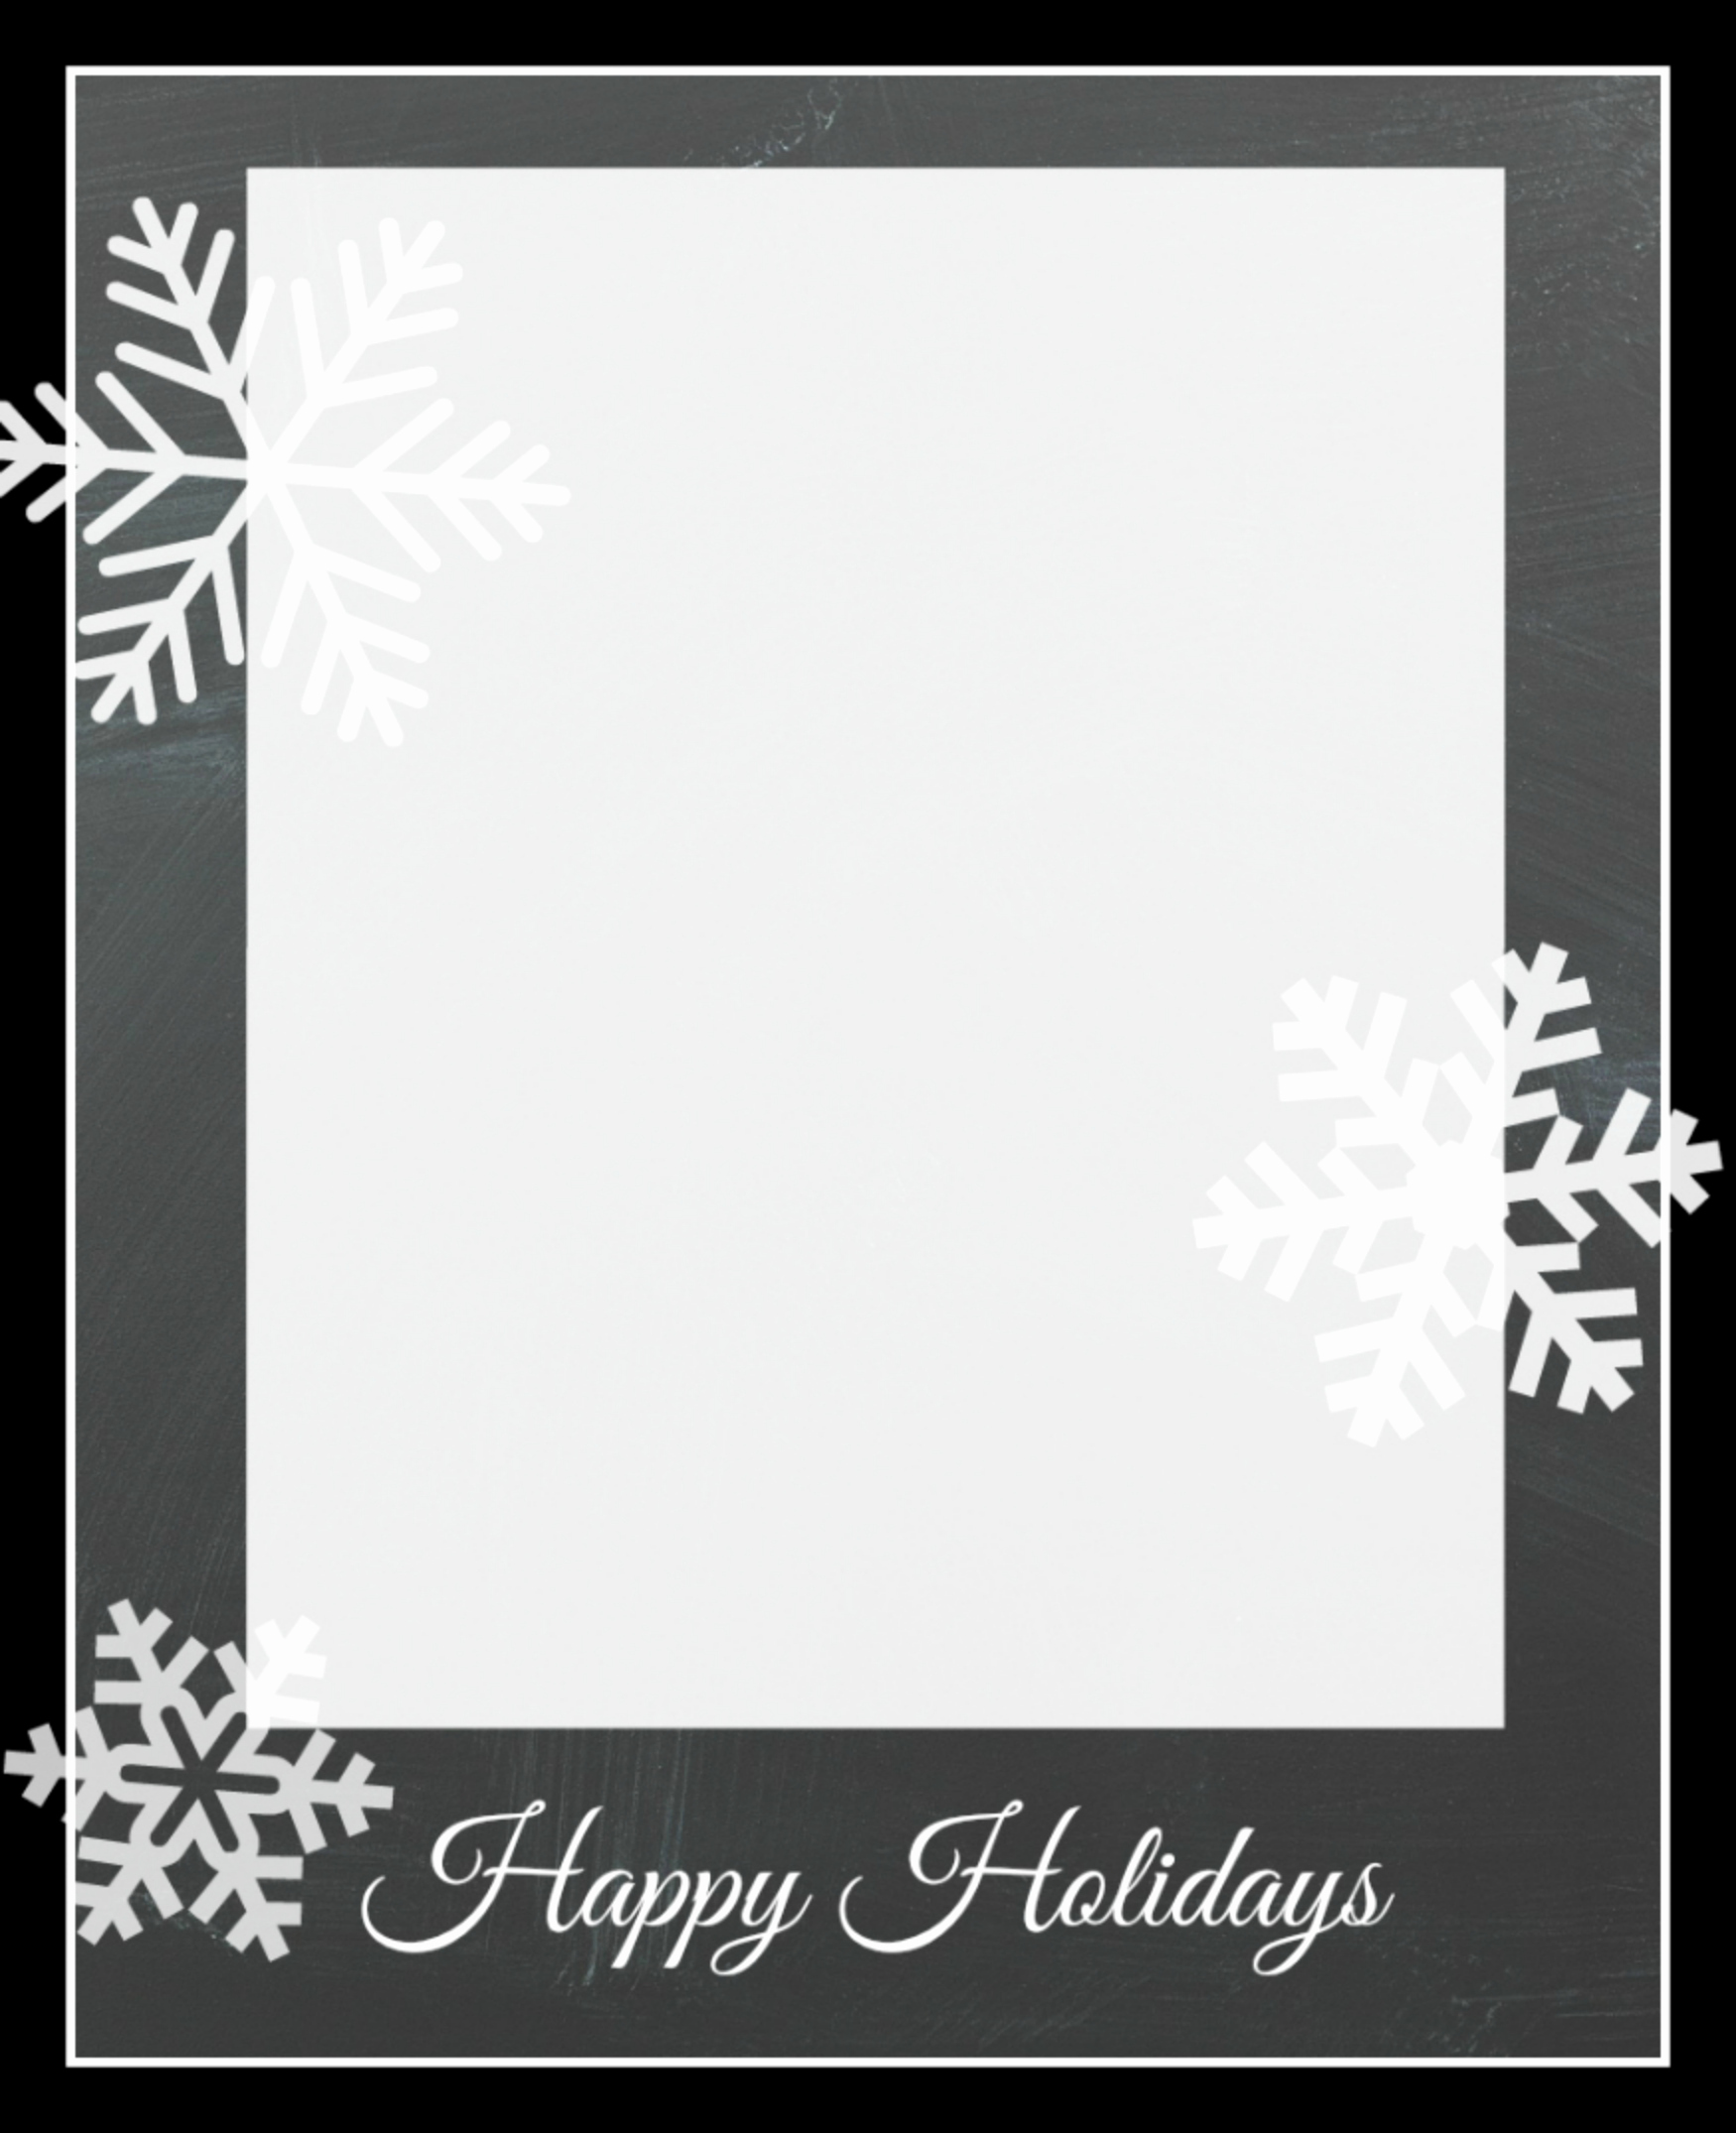 Free Printable Postcard Templates New Free Christmas Card Templates Crazy Little Projects